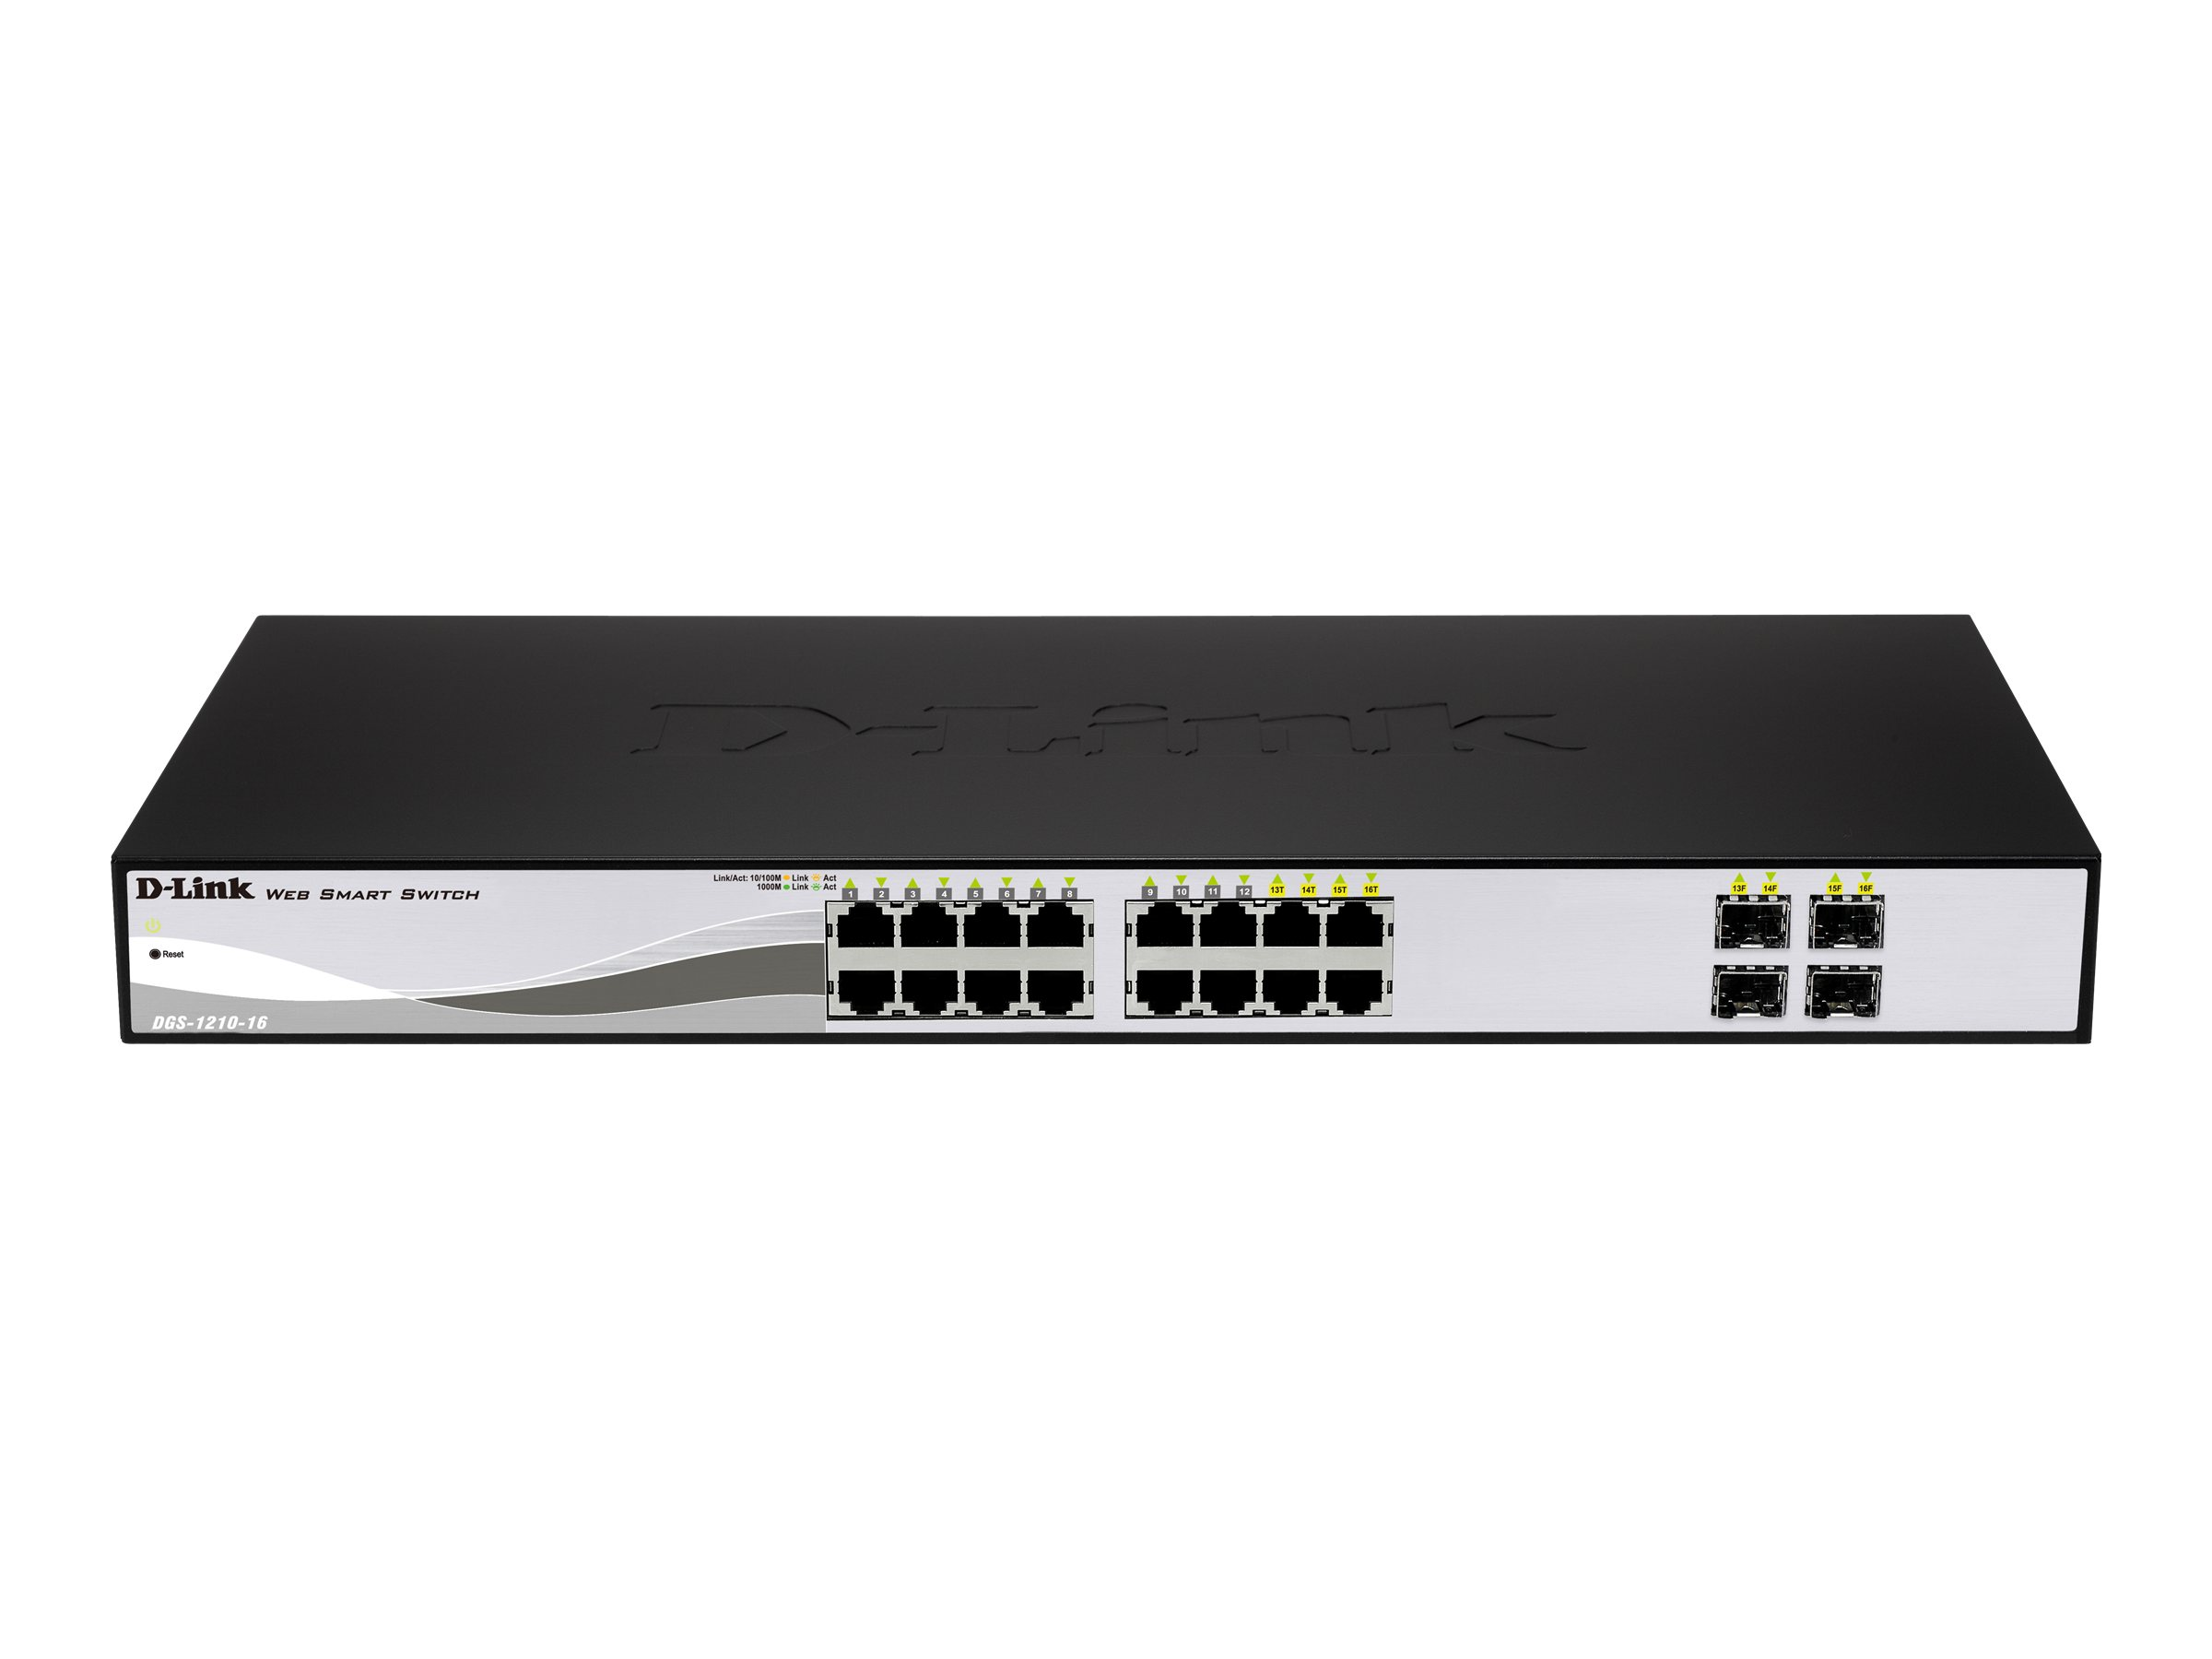 D-Link Web Smart DGS-1210-16 - Switch - verwaltet - 16 x 10/100/1000 + 4 x Shared SFP - Desktop